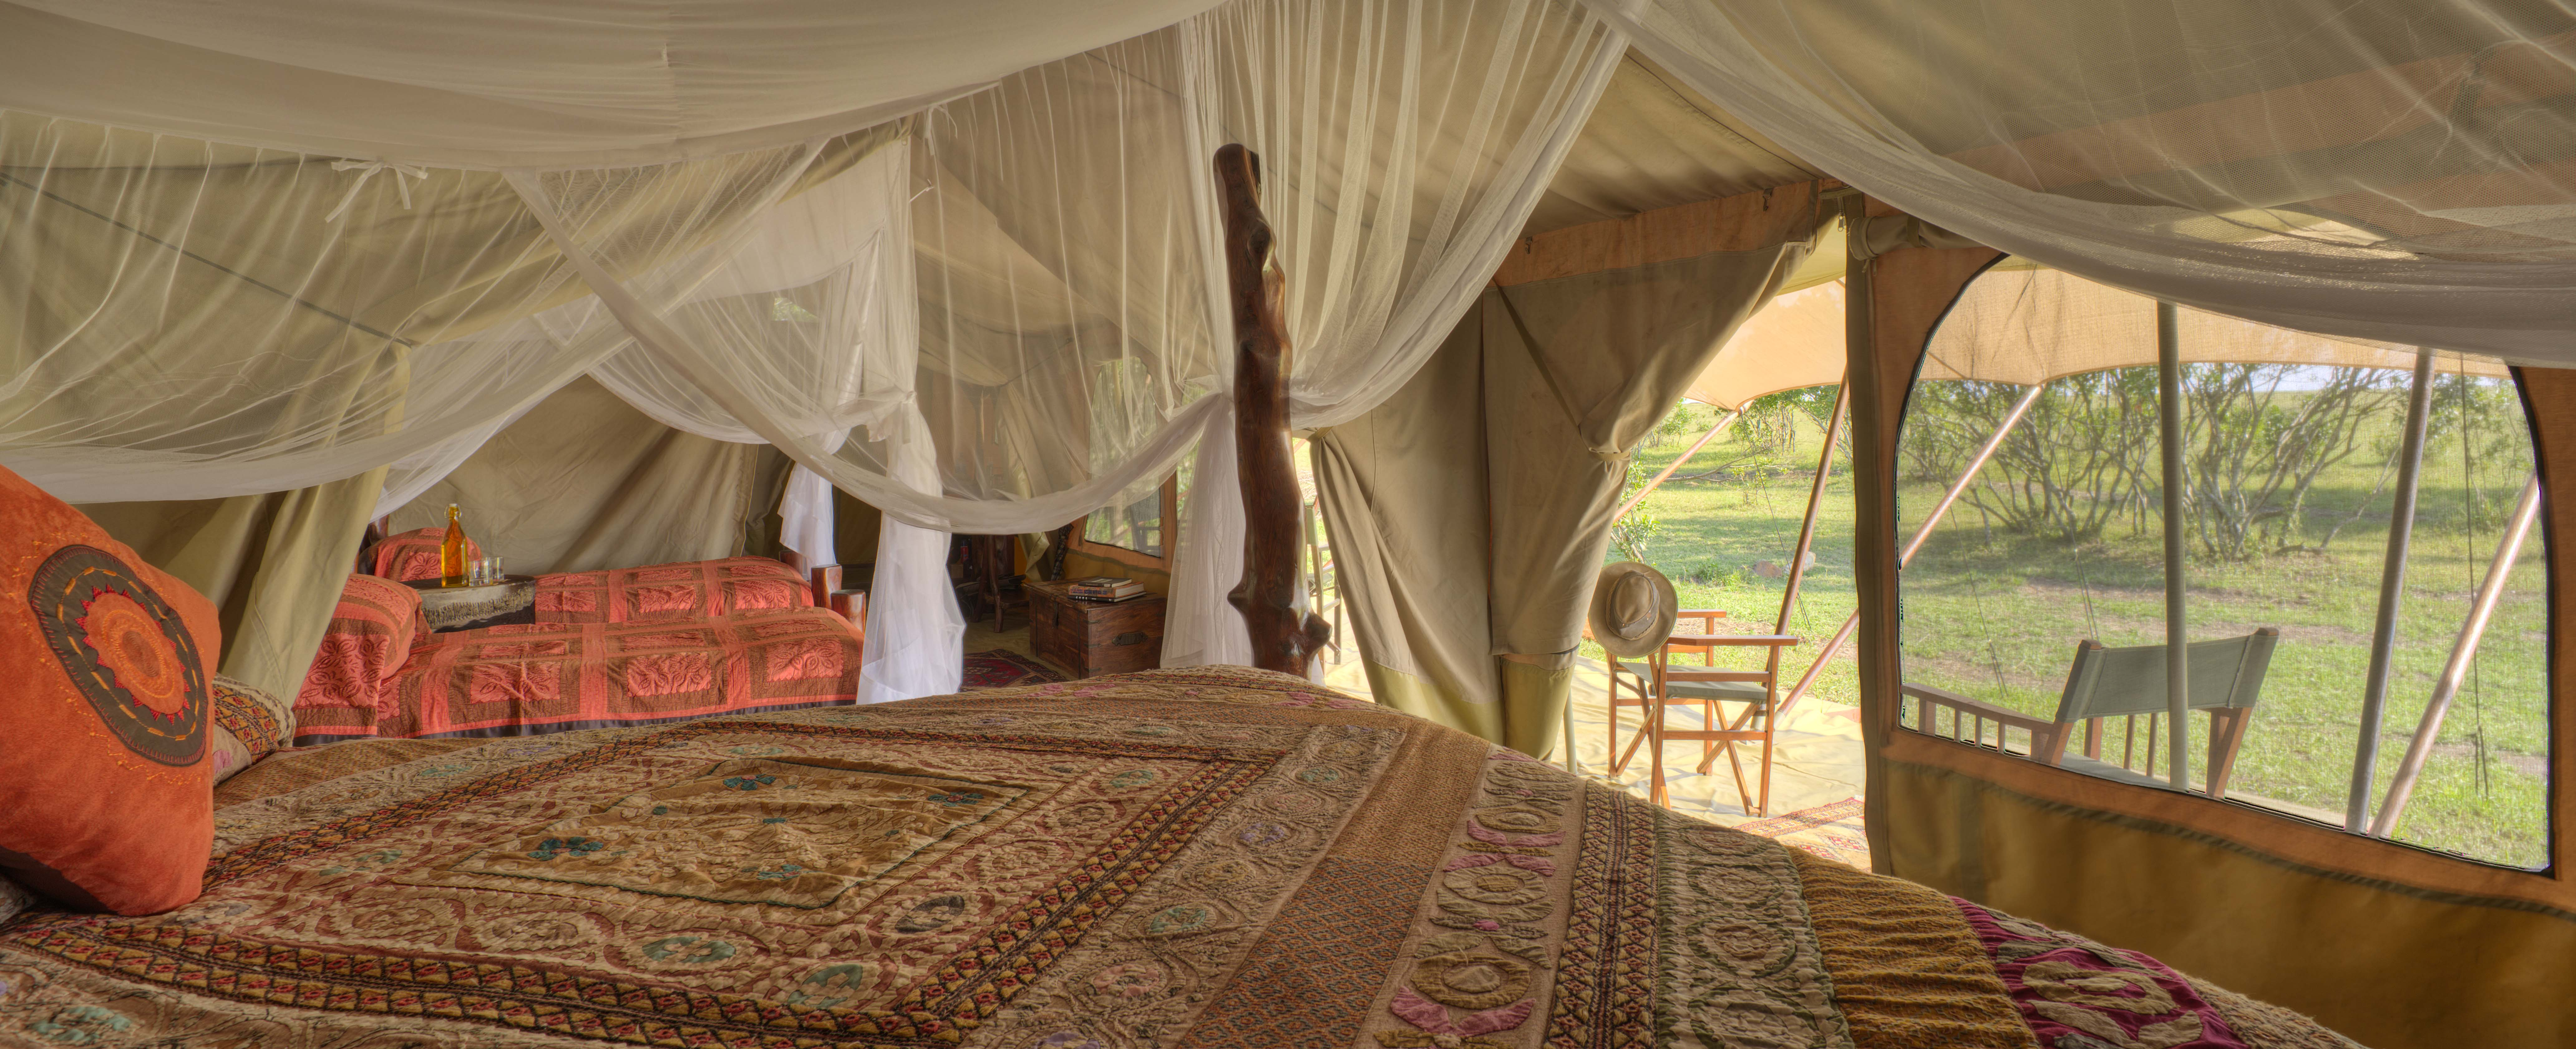 Saruni Wild - the family tent that accommodates 4 people